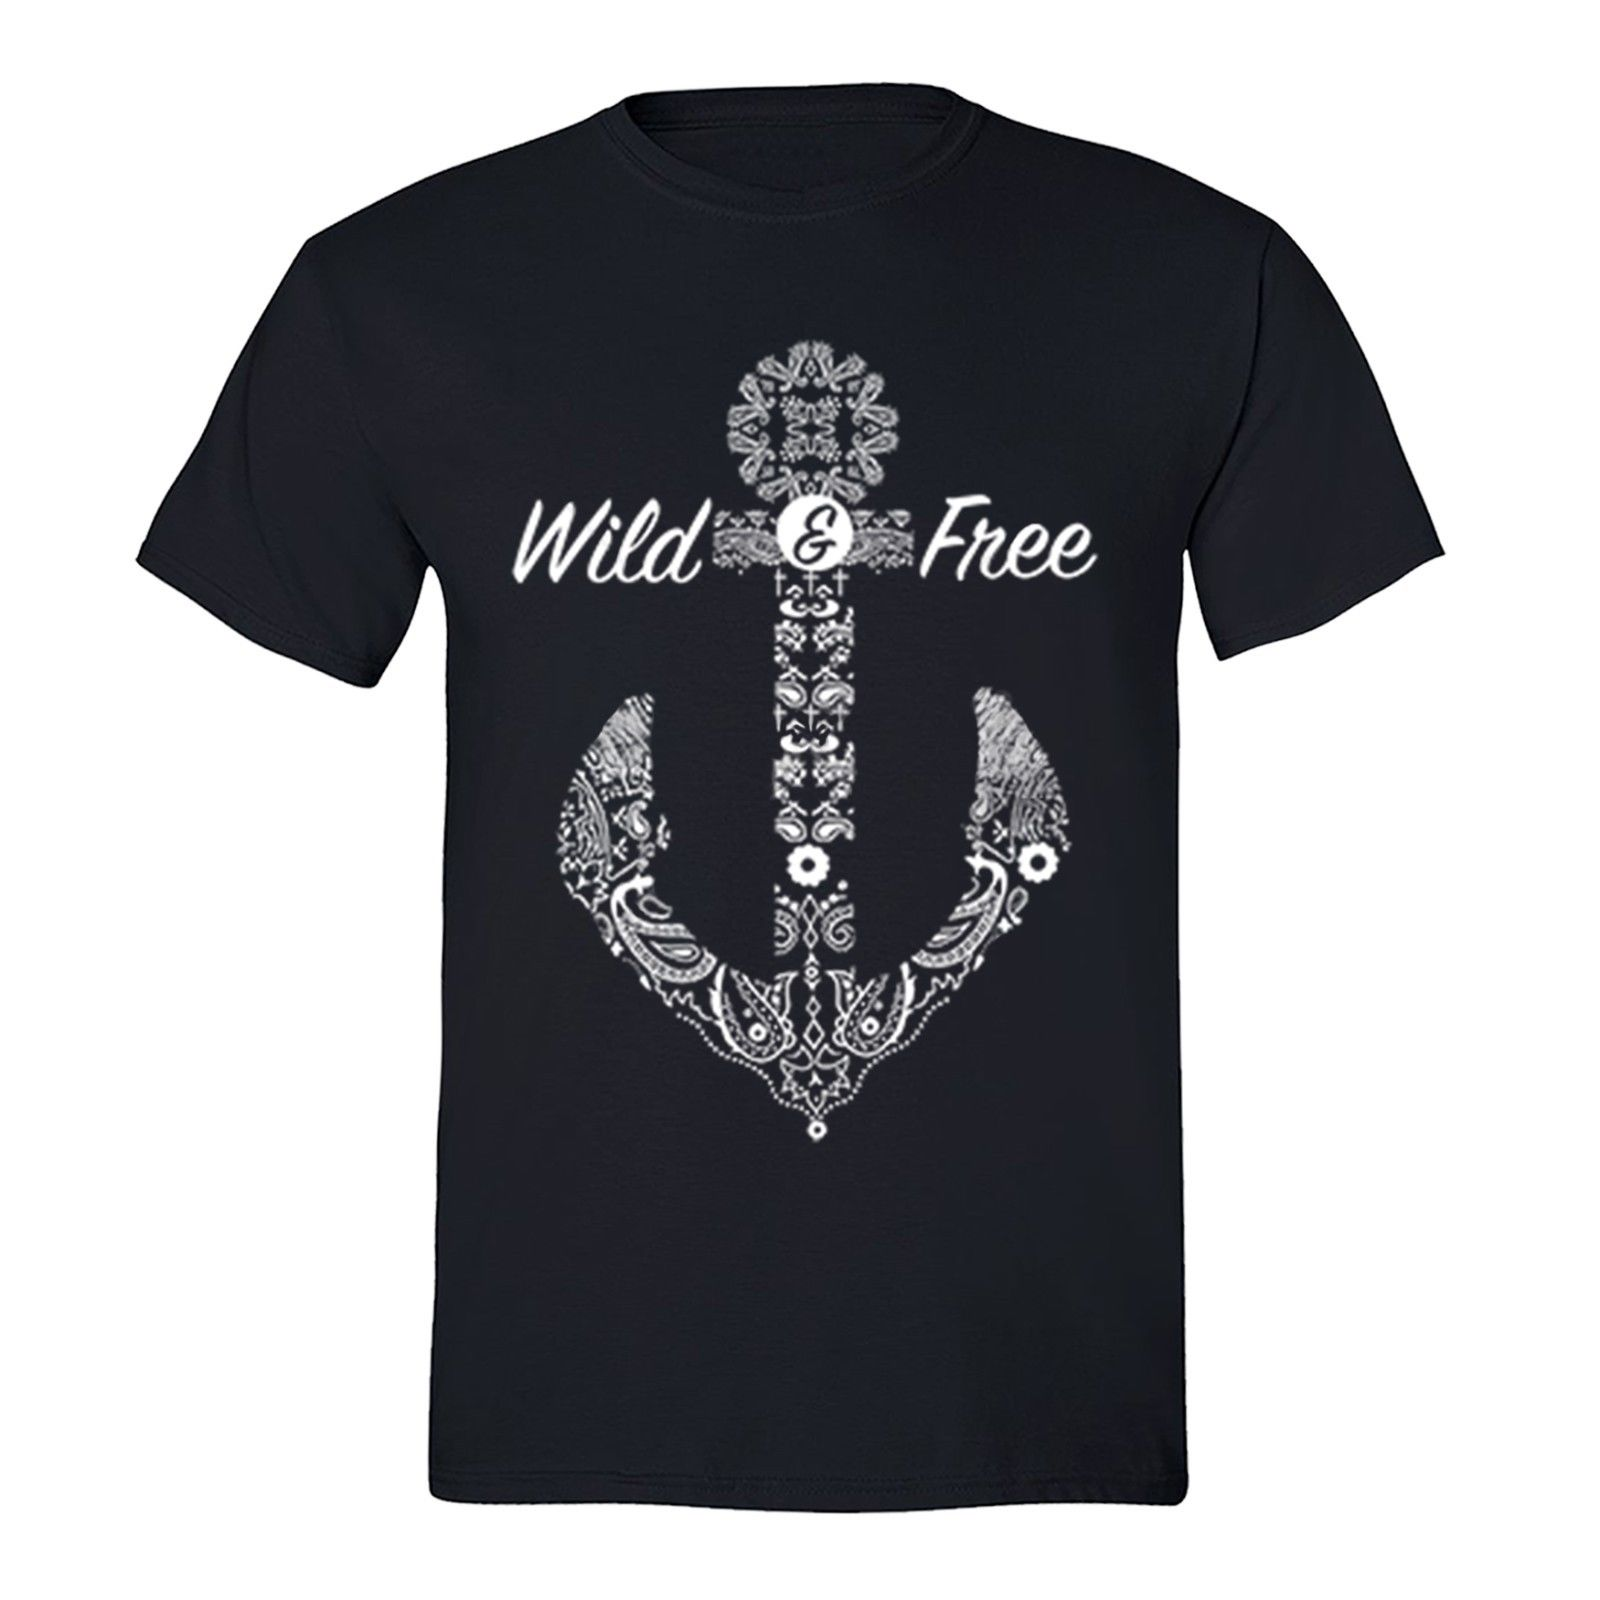 Fashion Men Tshirt Wild Free Tshirt White Anchor Cruise Vacation Sail Summer Beach T-Shirt Black O Neck T-shirt